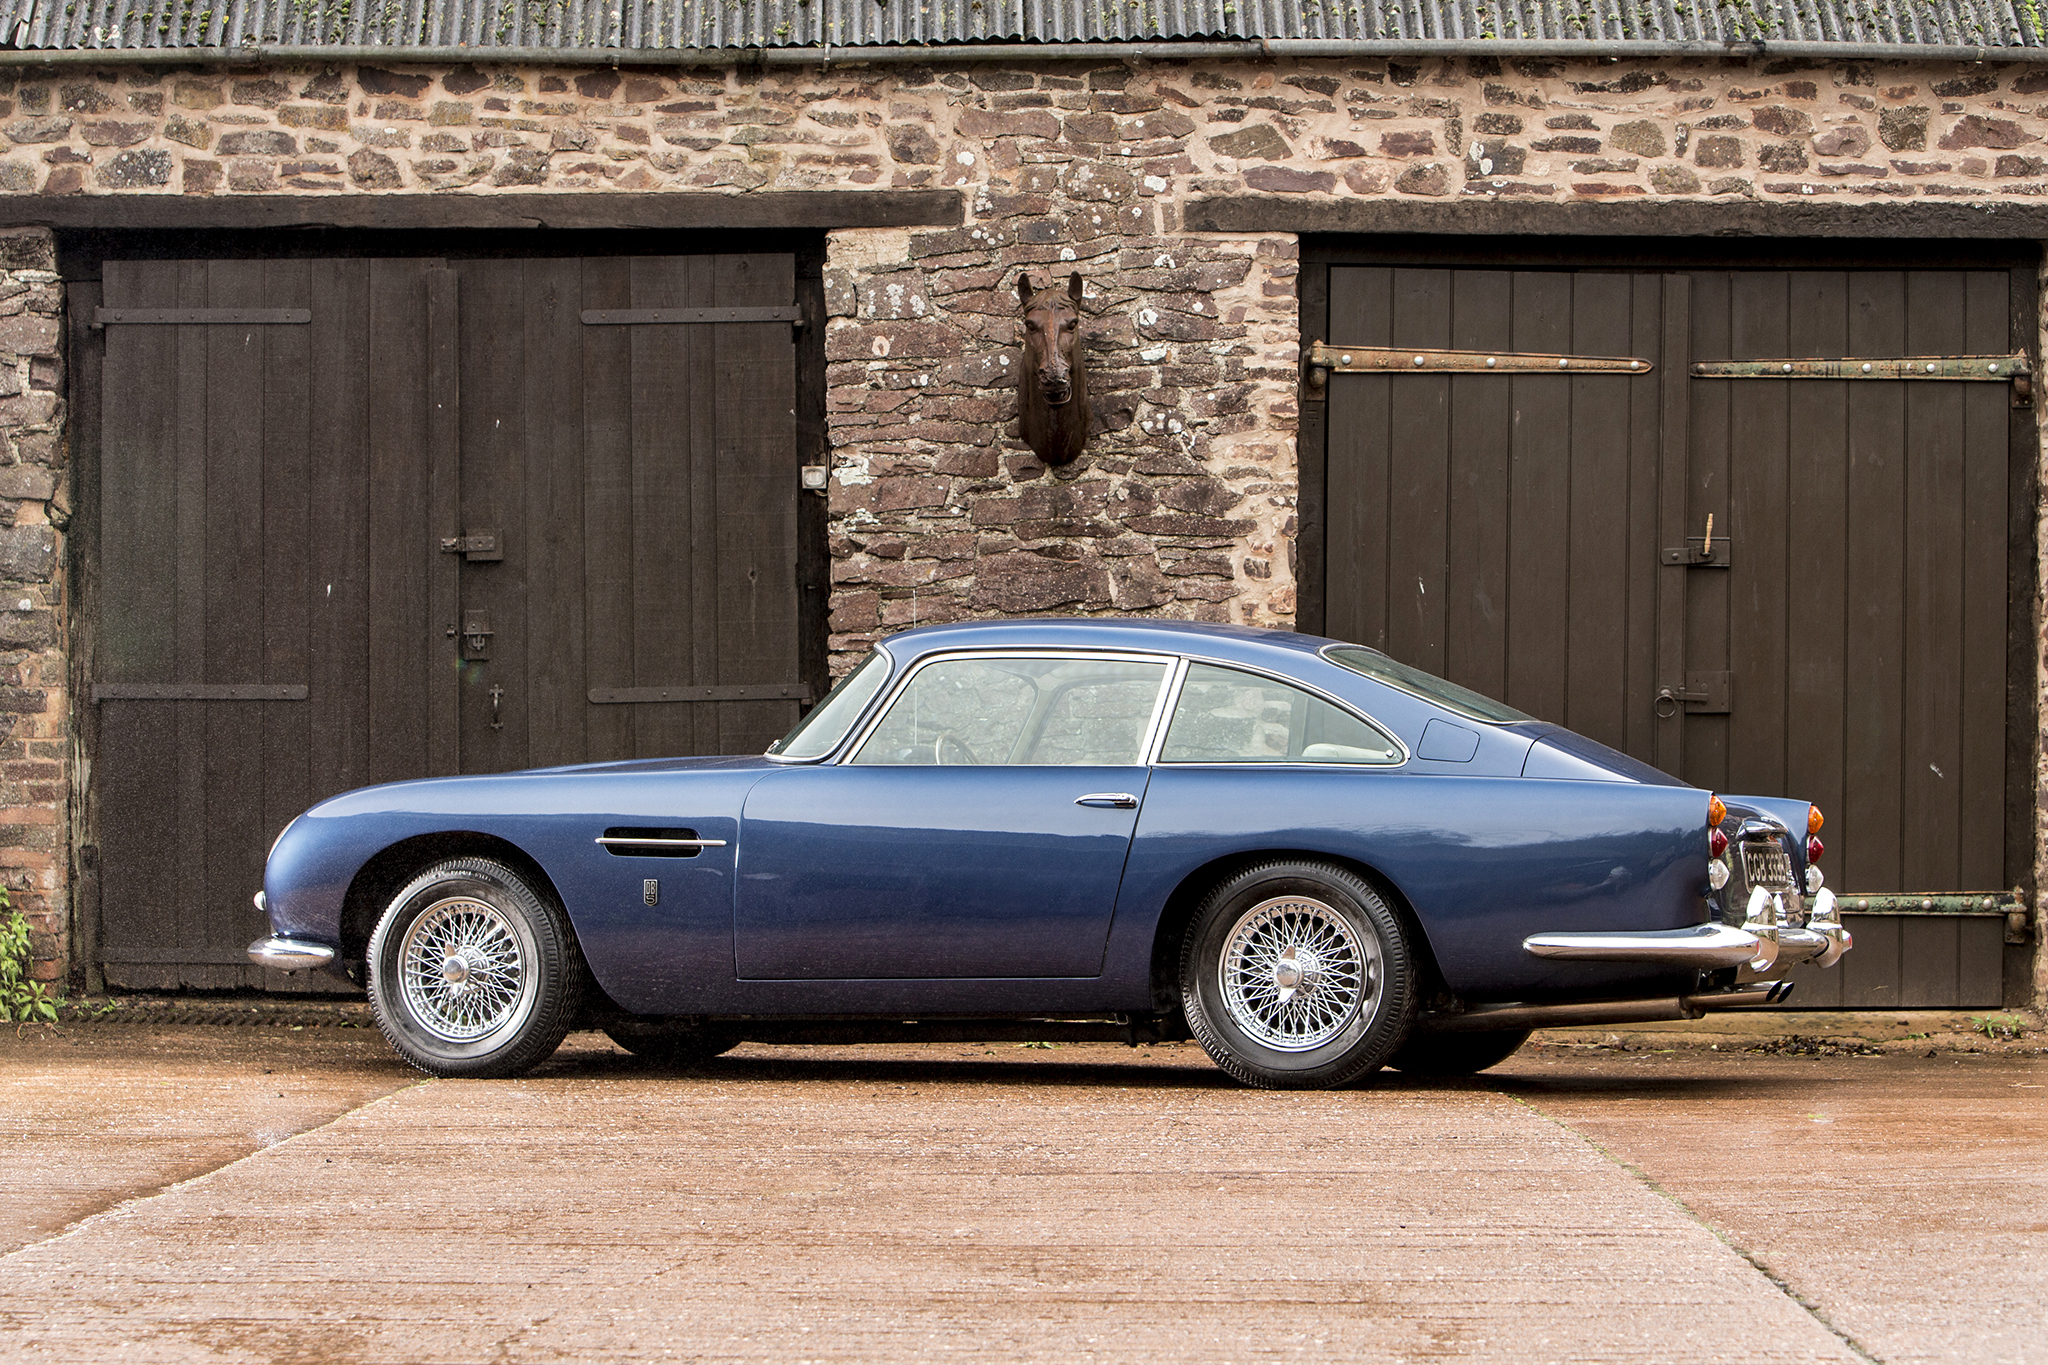 1964 db5 sold for $727,995 highlights bonhams 2017 aston martin sale